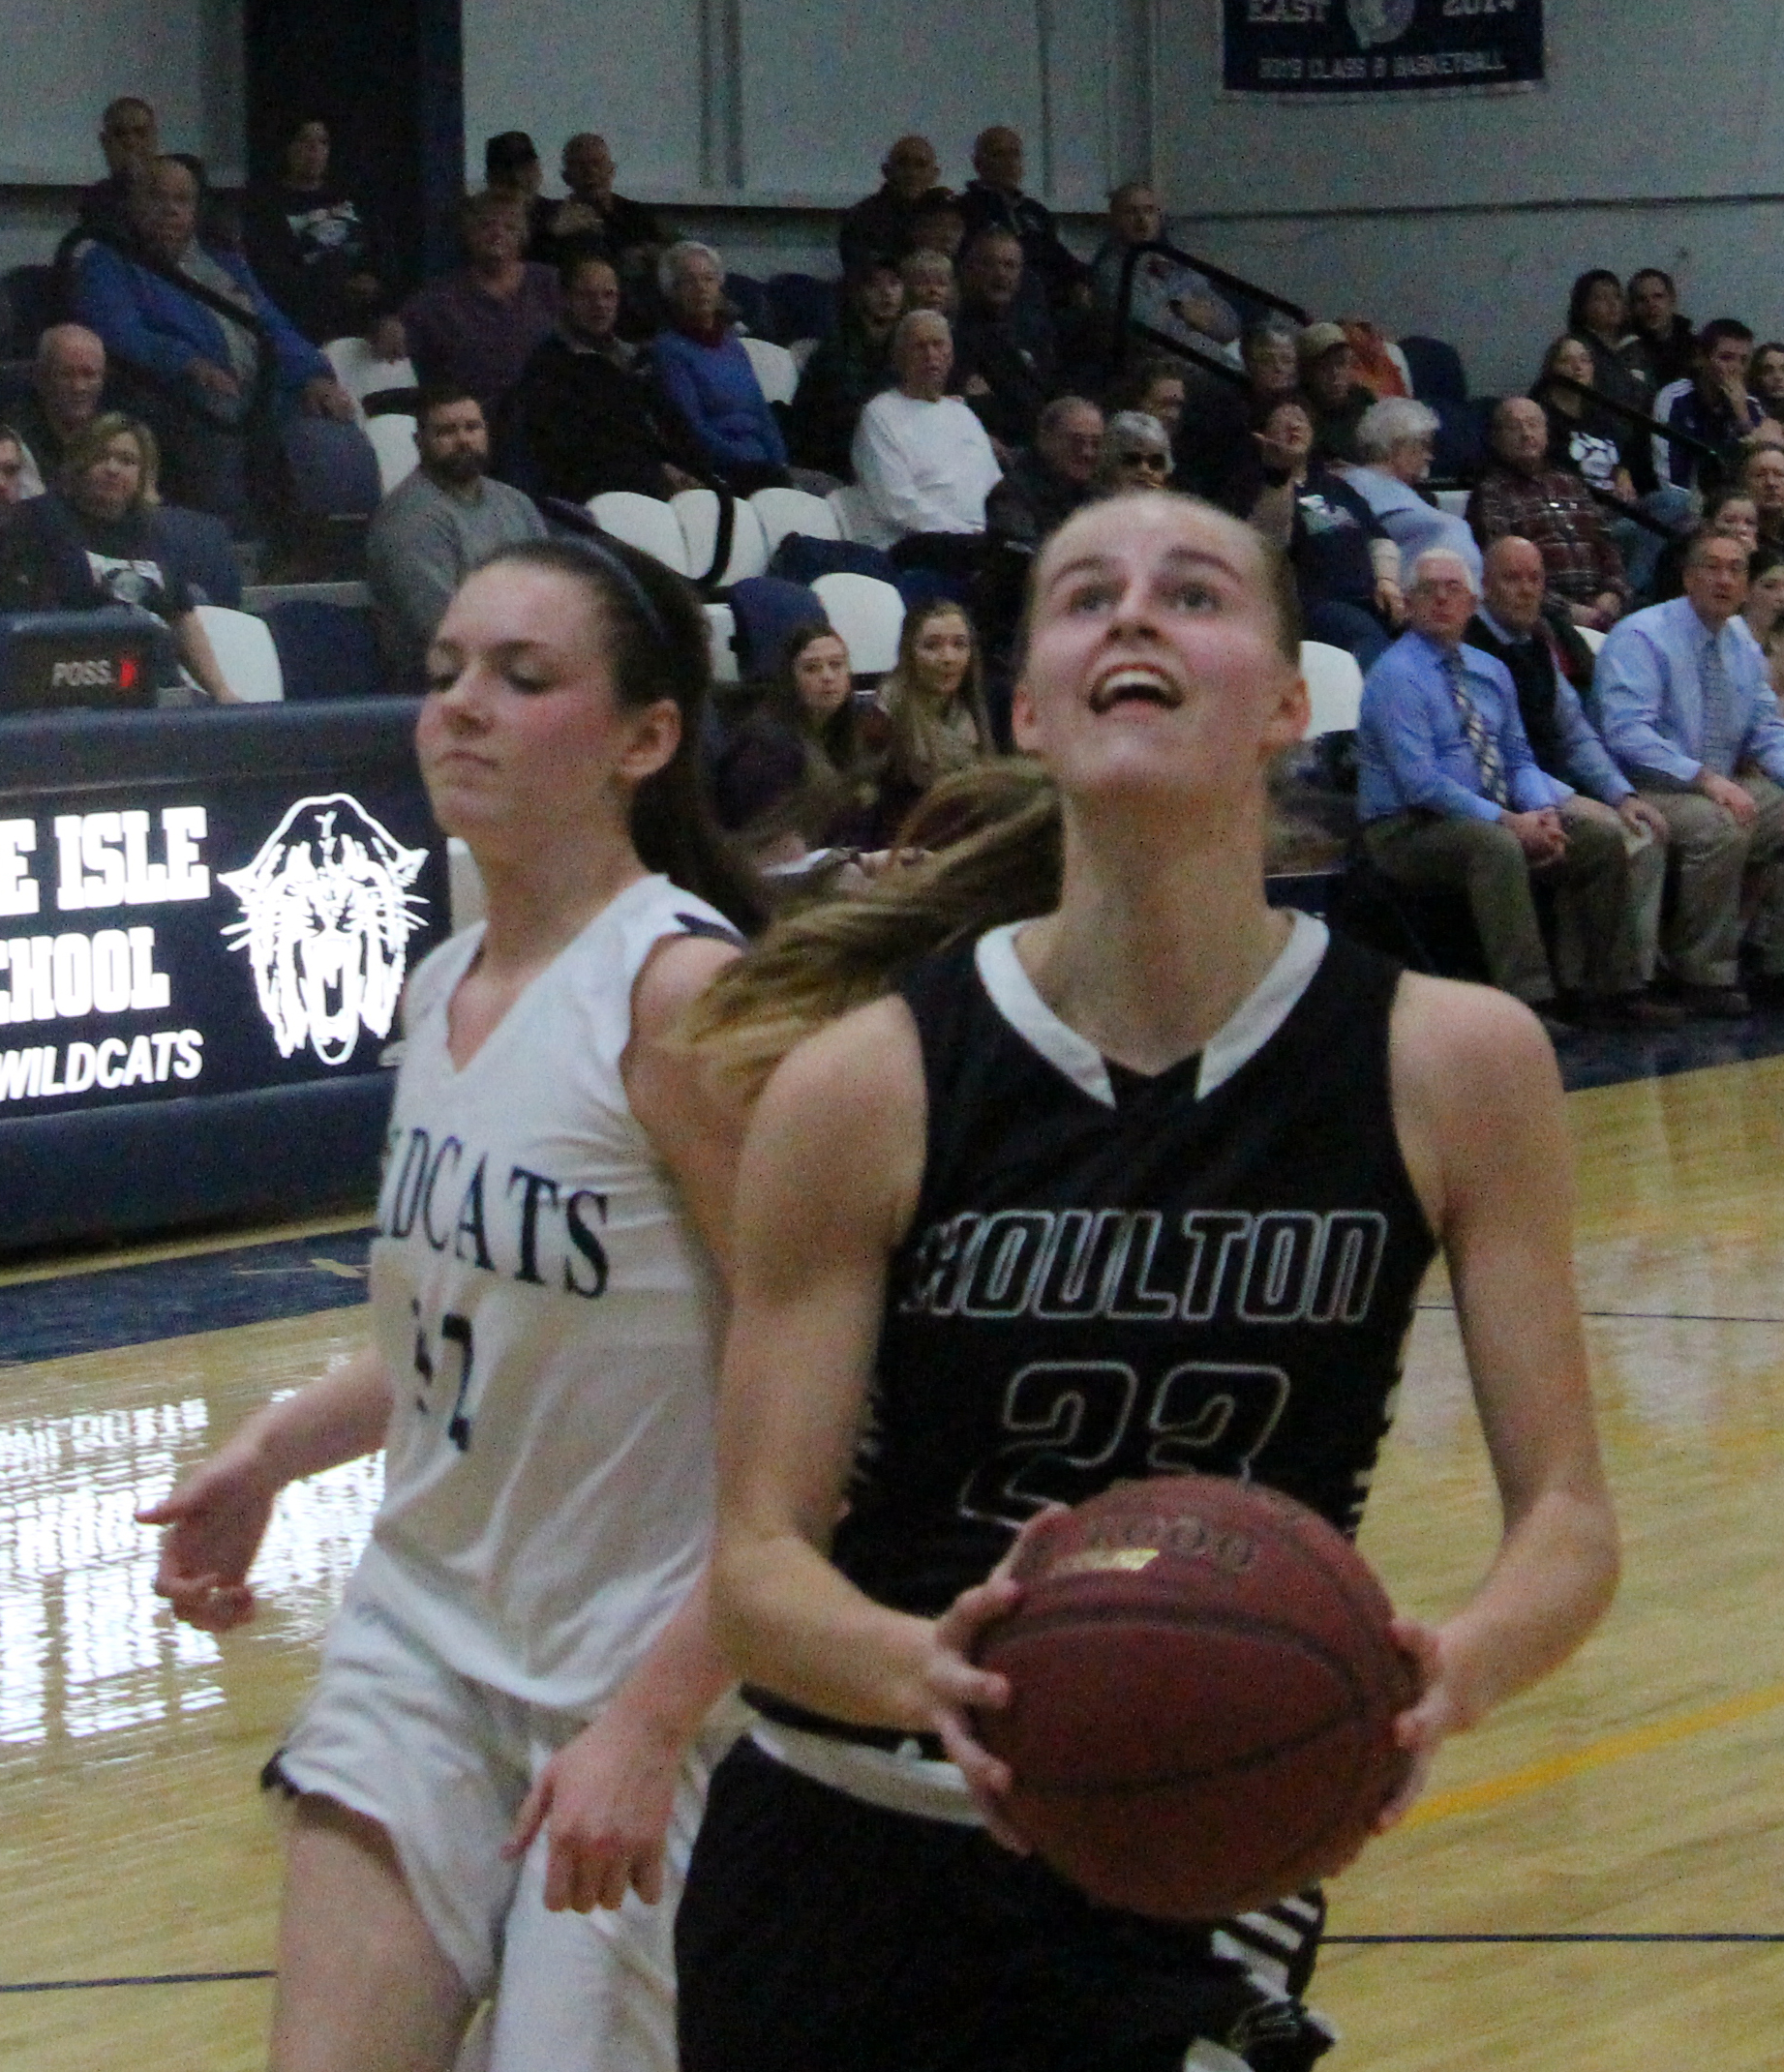 Houlton girls fend off Presque Isle for ninth straight win